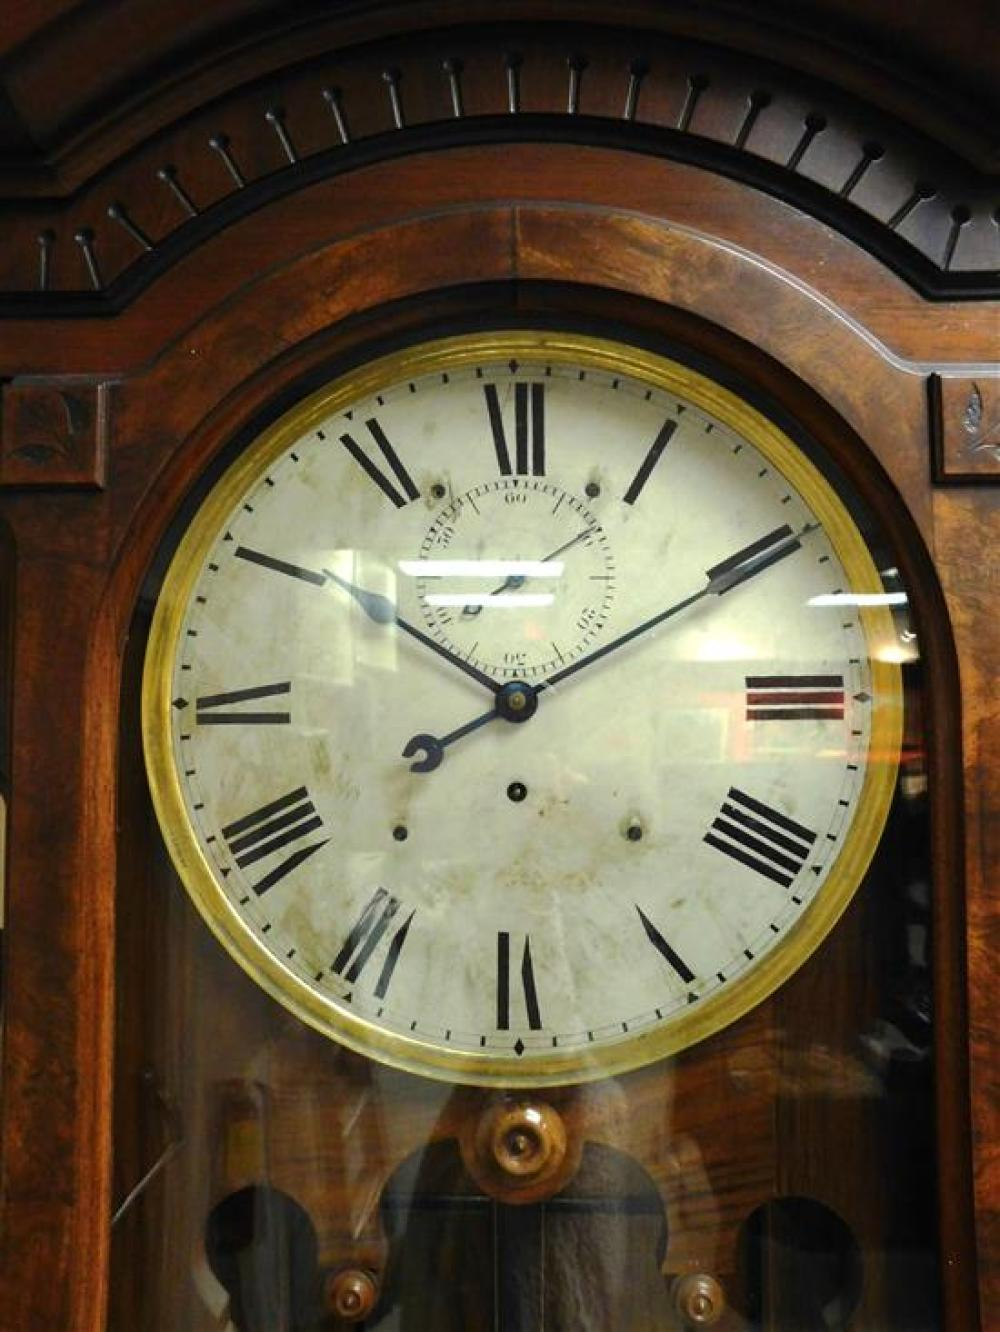 A circa 1886 Seth Thomas Regulator No. 14 or 15 case fitted with a No. 69 or 69A movement, the case having walnut and burled veneers...